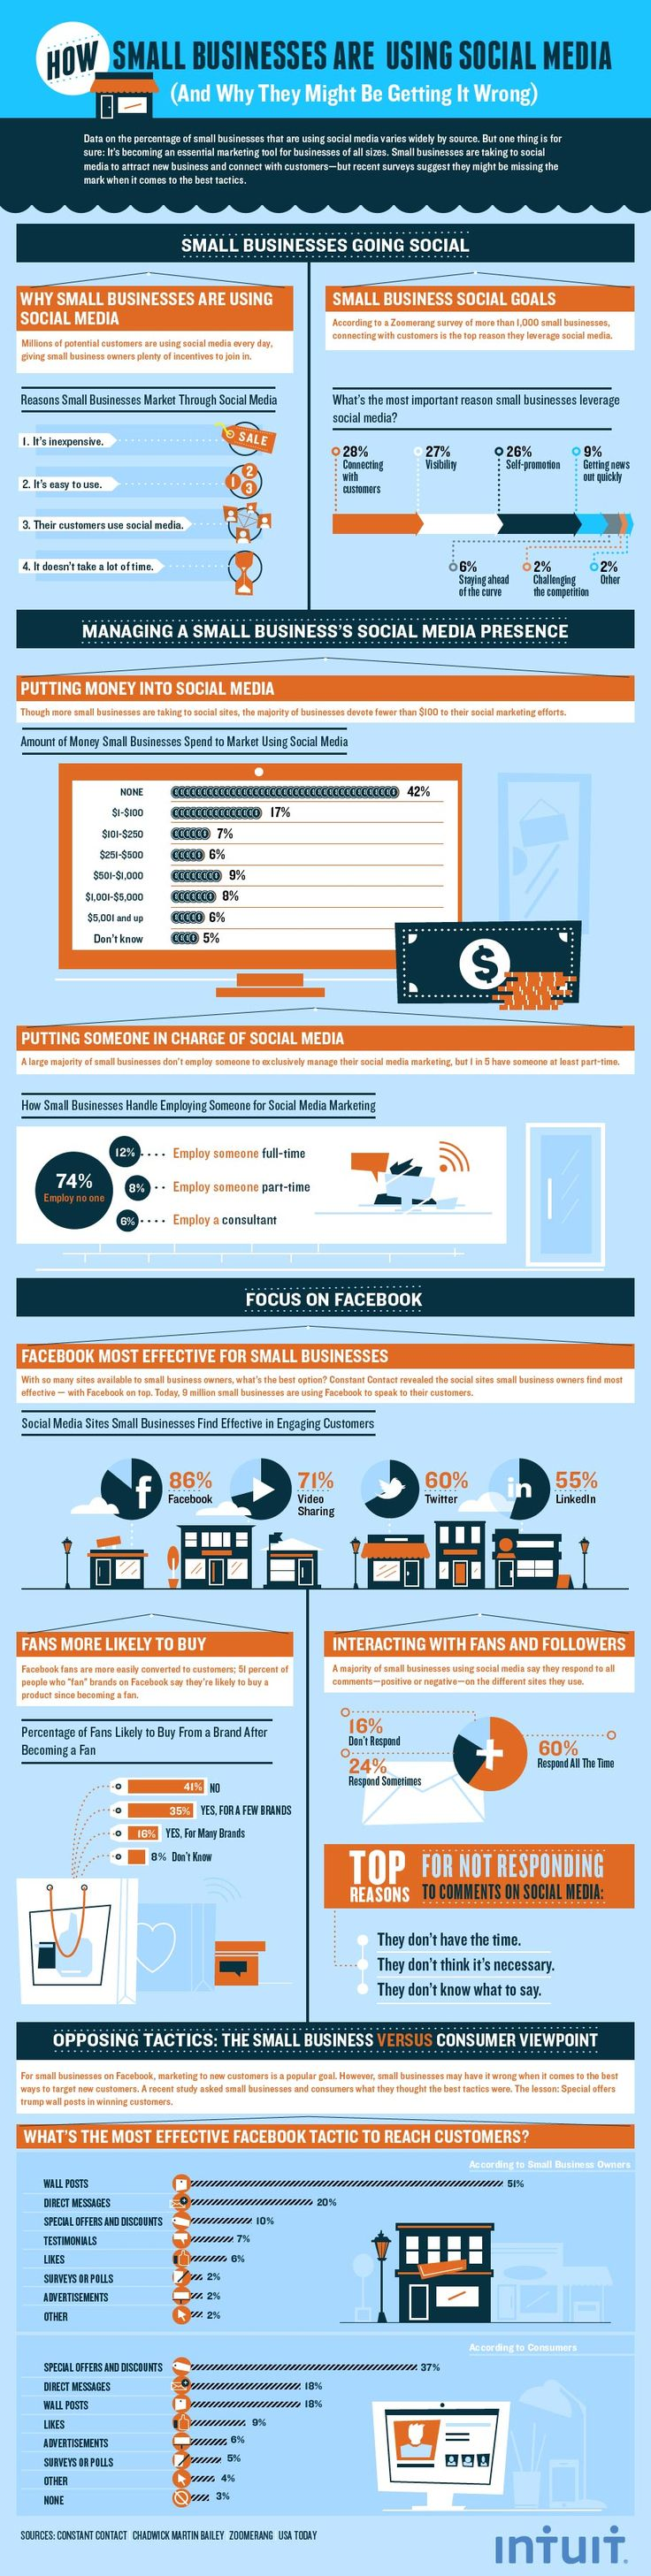 94 best Infographic images on Pinterest | Infographic, Infographics ...